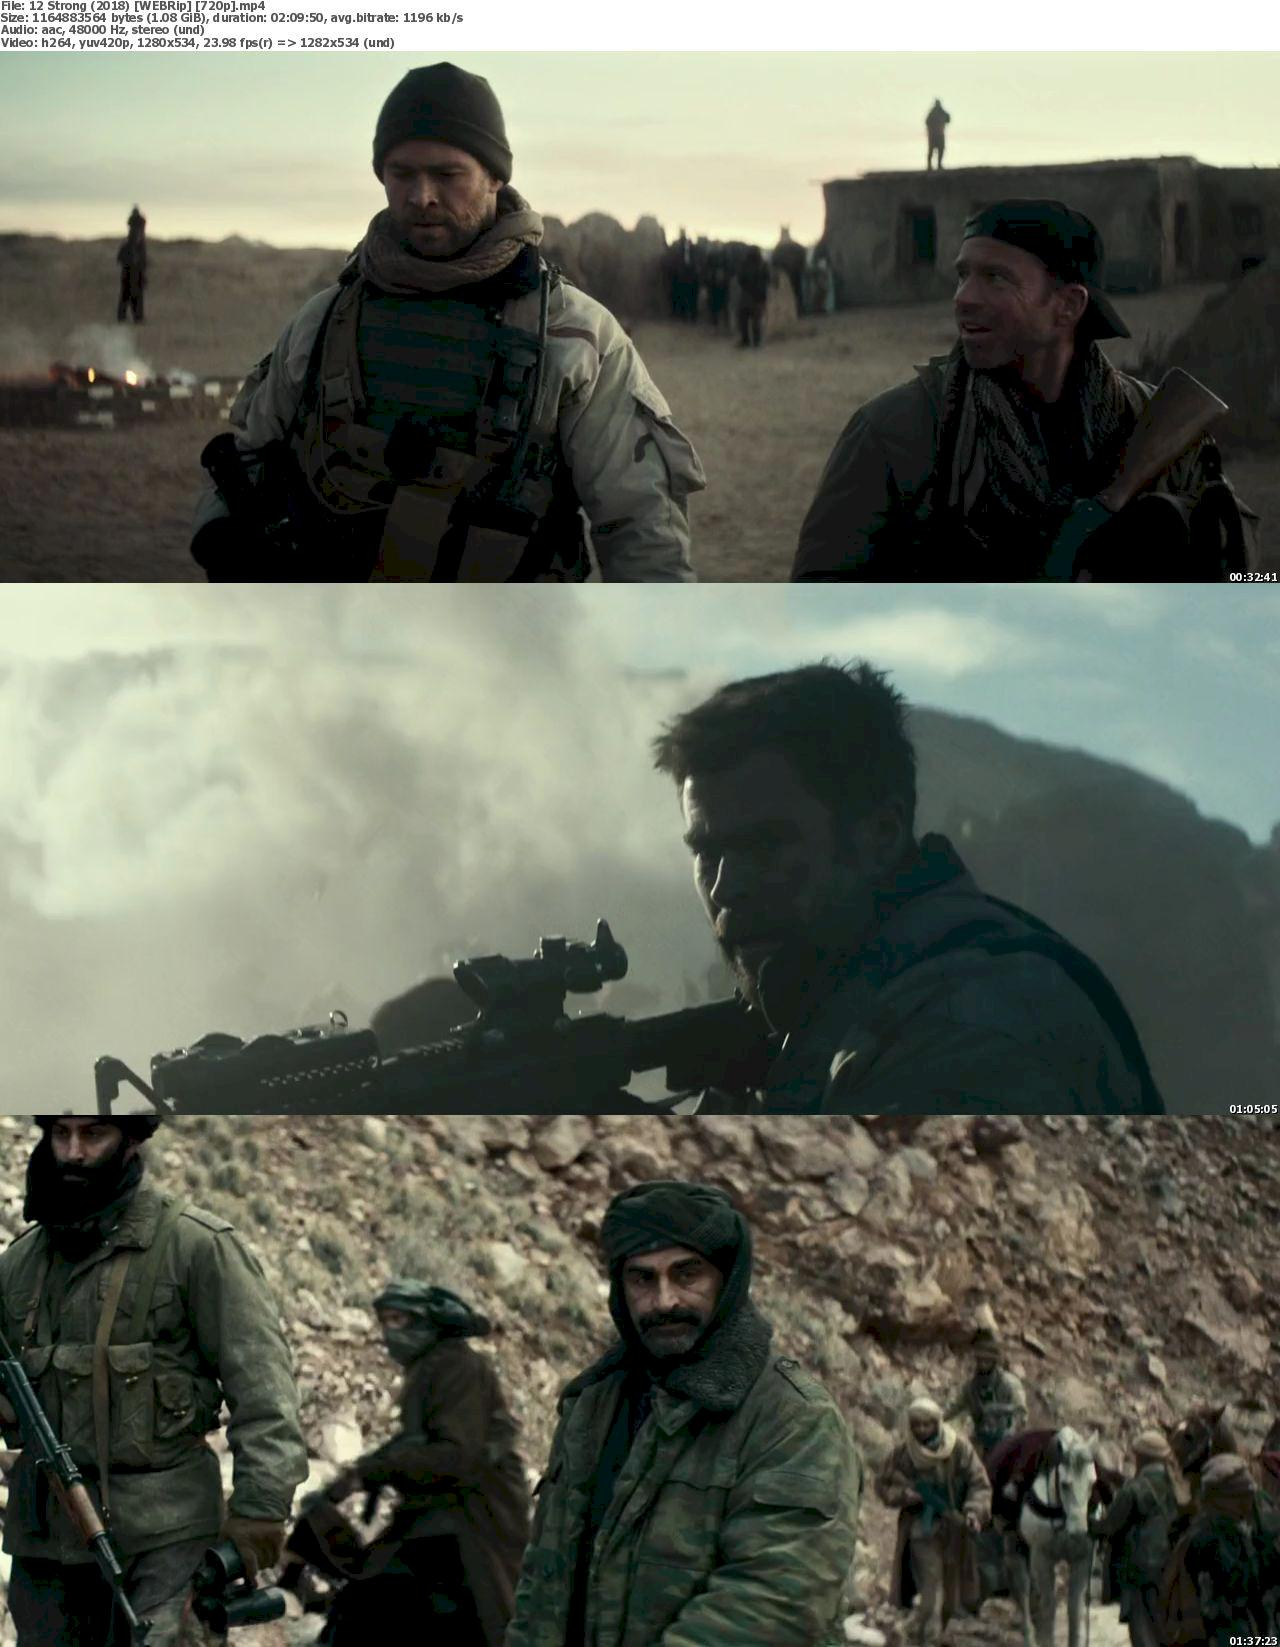 12 Strong (2018) [720p] WEB-Rip Free Download 720p Screenshot